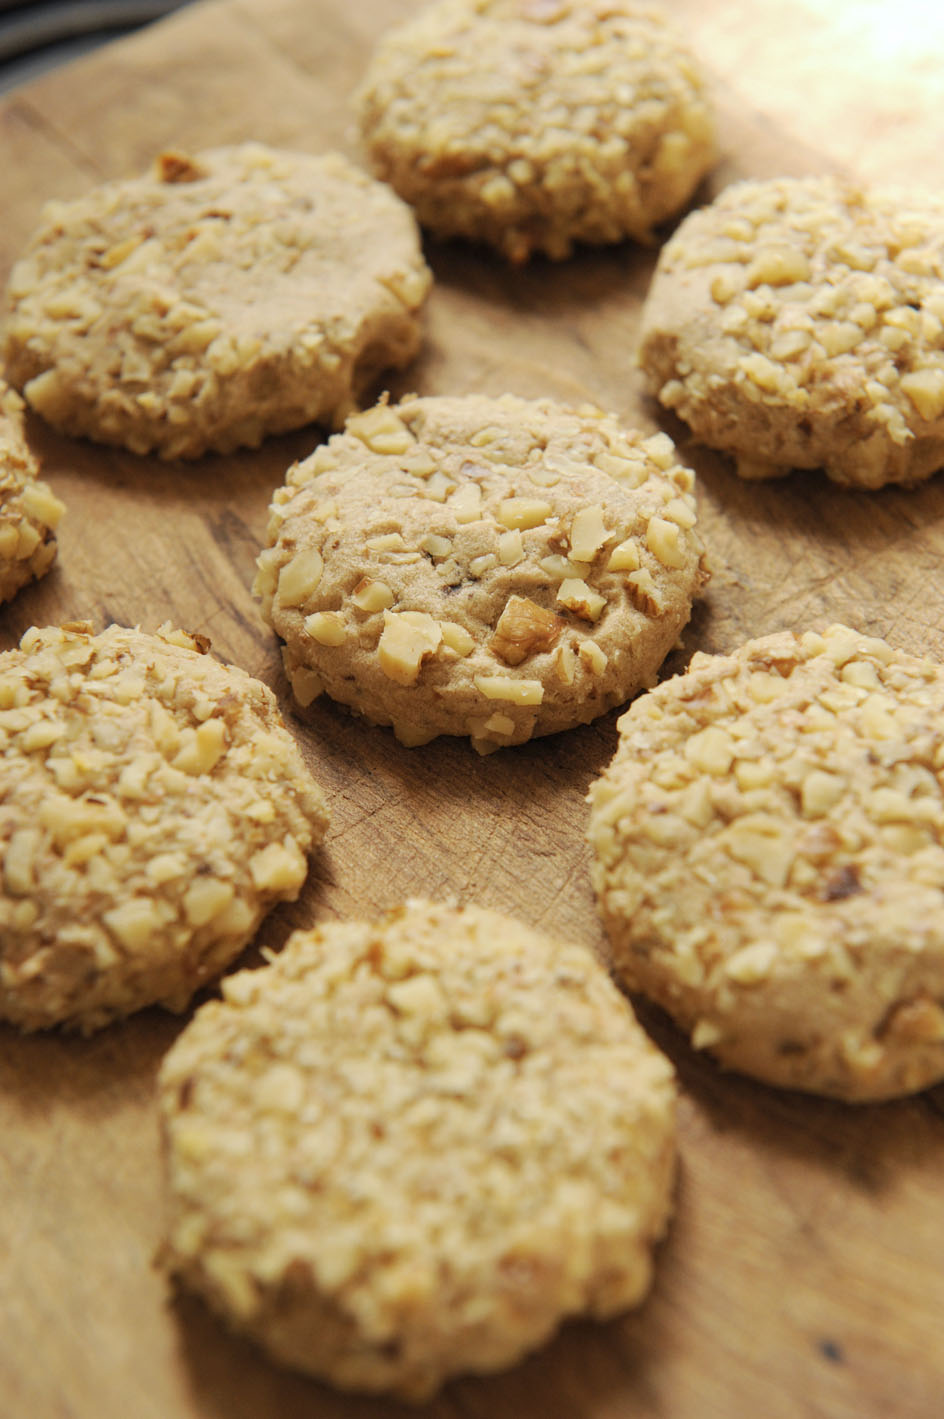 ... - Friday Baking Club: Public holiday baking - coffee walnut biscuits